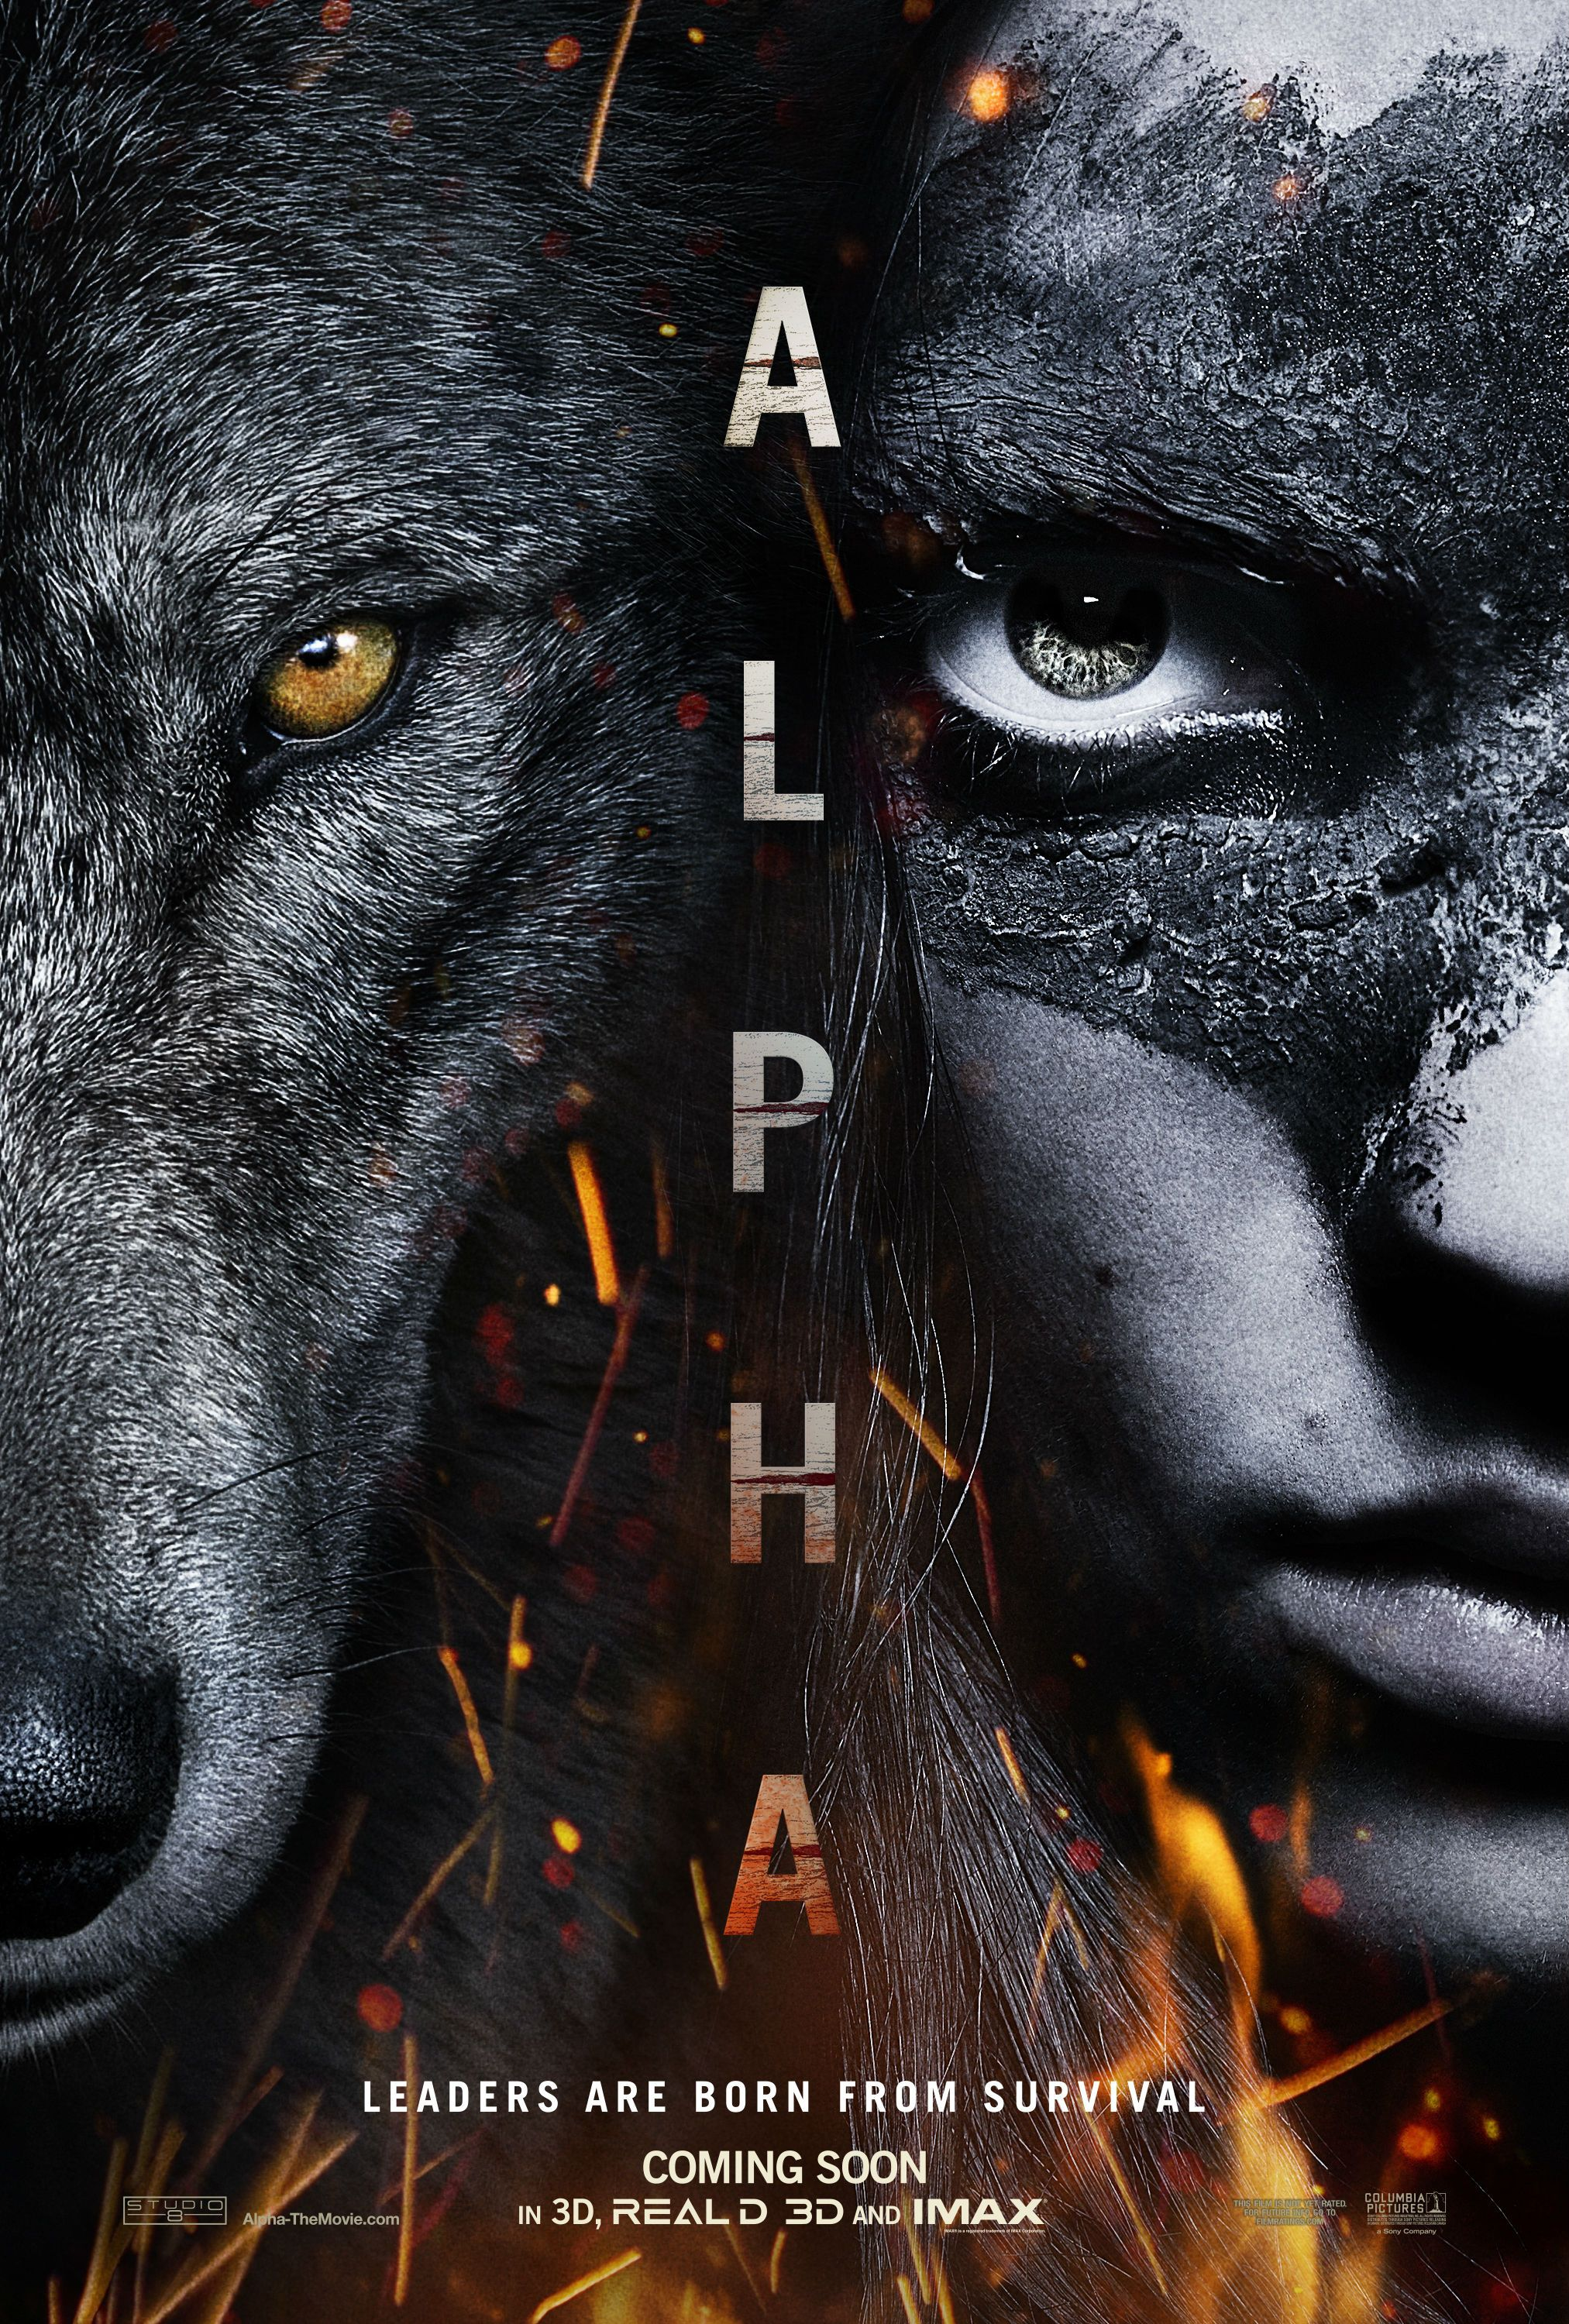 Alpha Streaming Movies Online Full Movies Online Free Full Movies